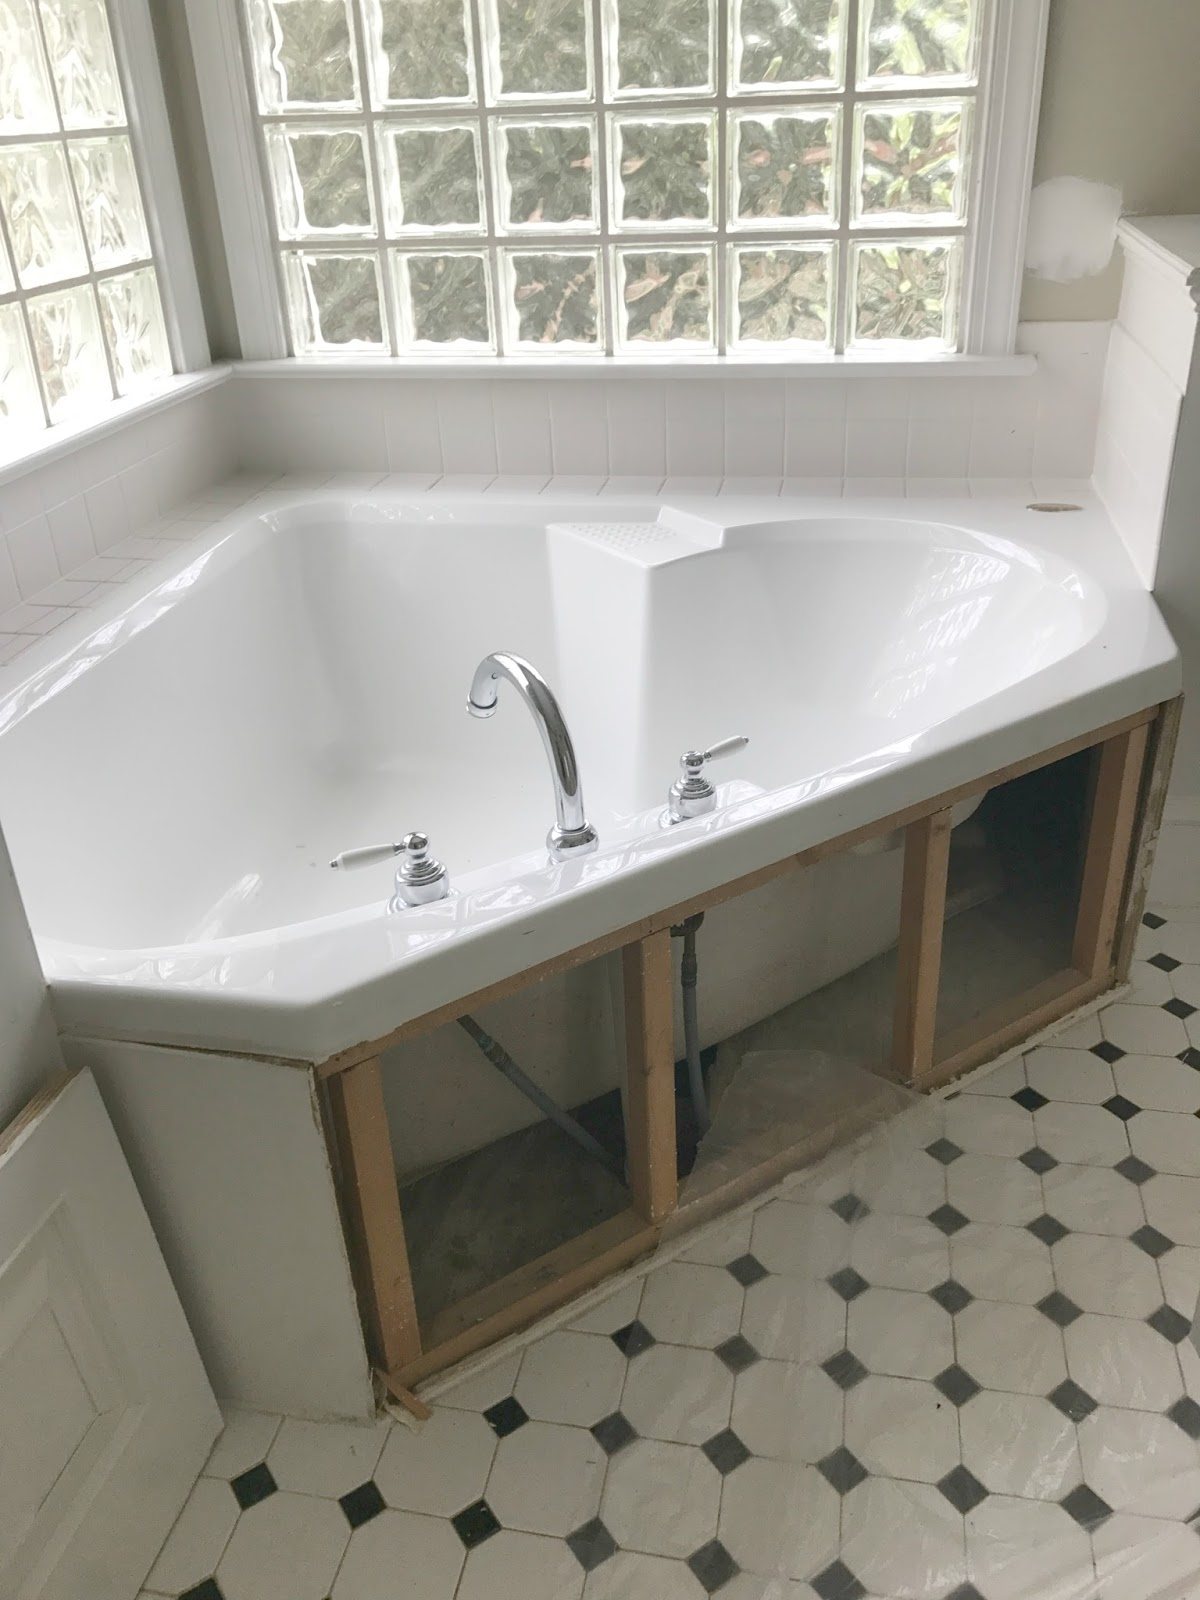 Once We Decided To Rip Out The Tub I Immediately Started Tub Shopping! At  First I Was Worried That A Freestanding Tub Wouldnu0027t Be As Comfortable To Sit  In ...